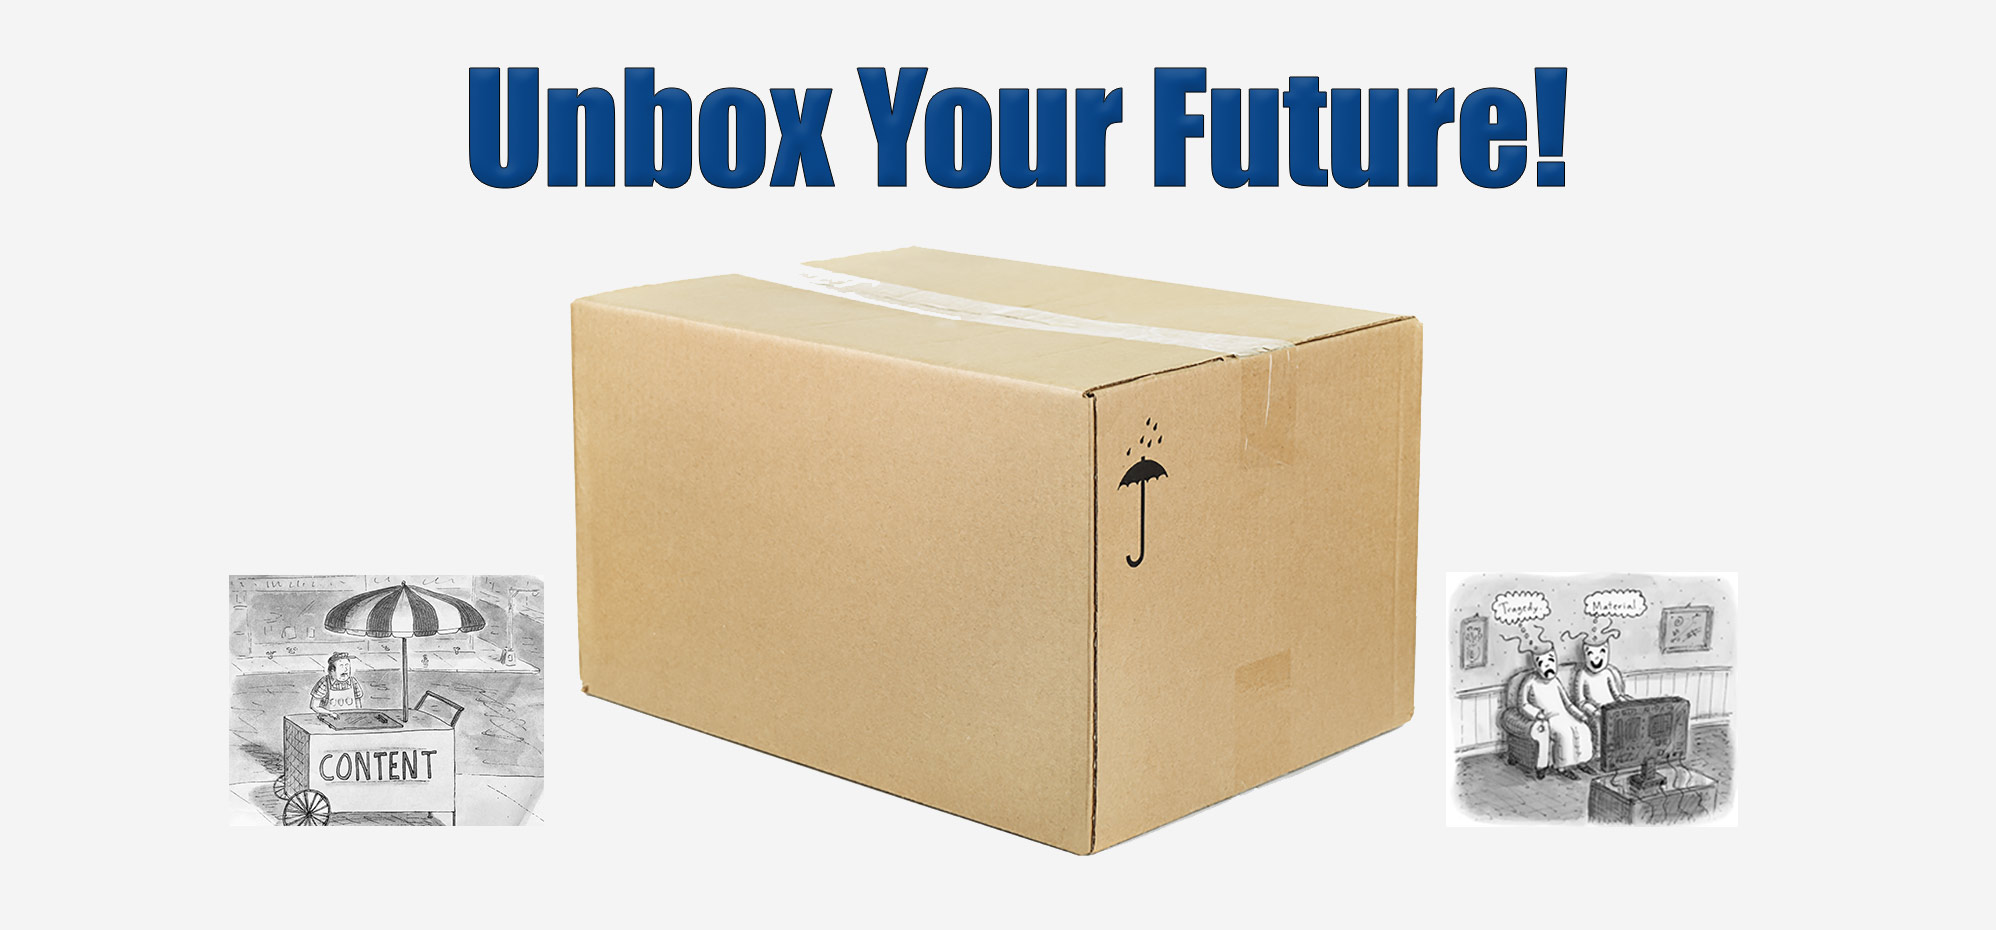 Unbox Your Future!